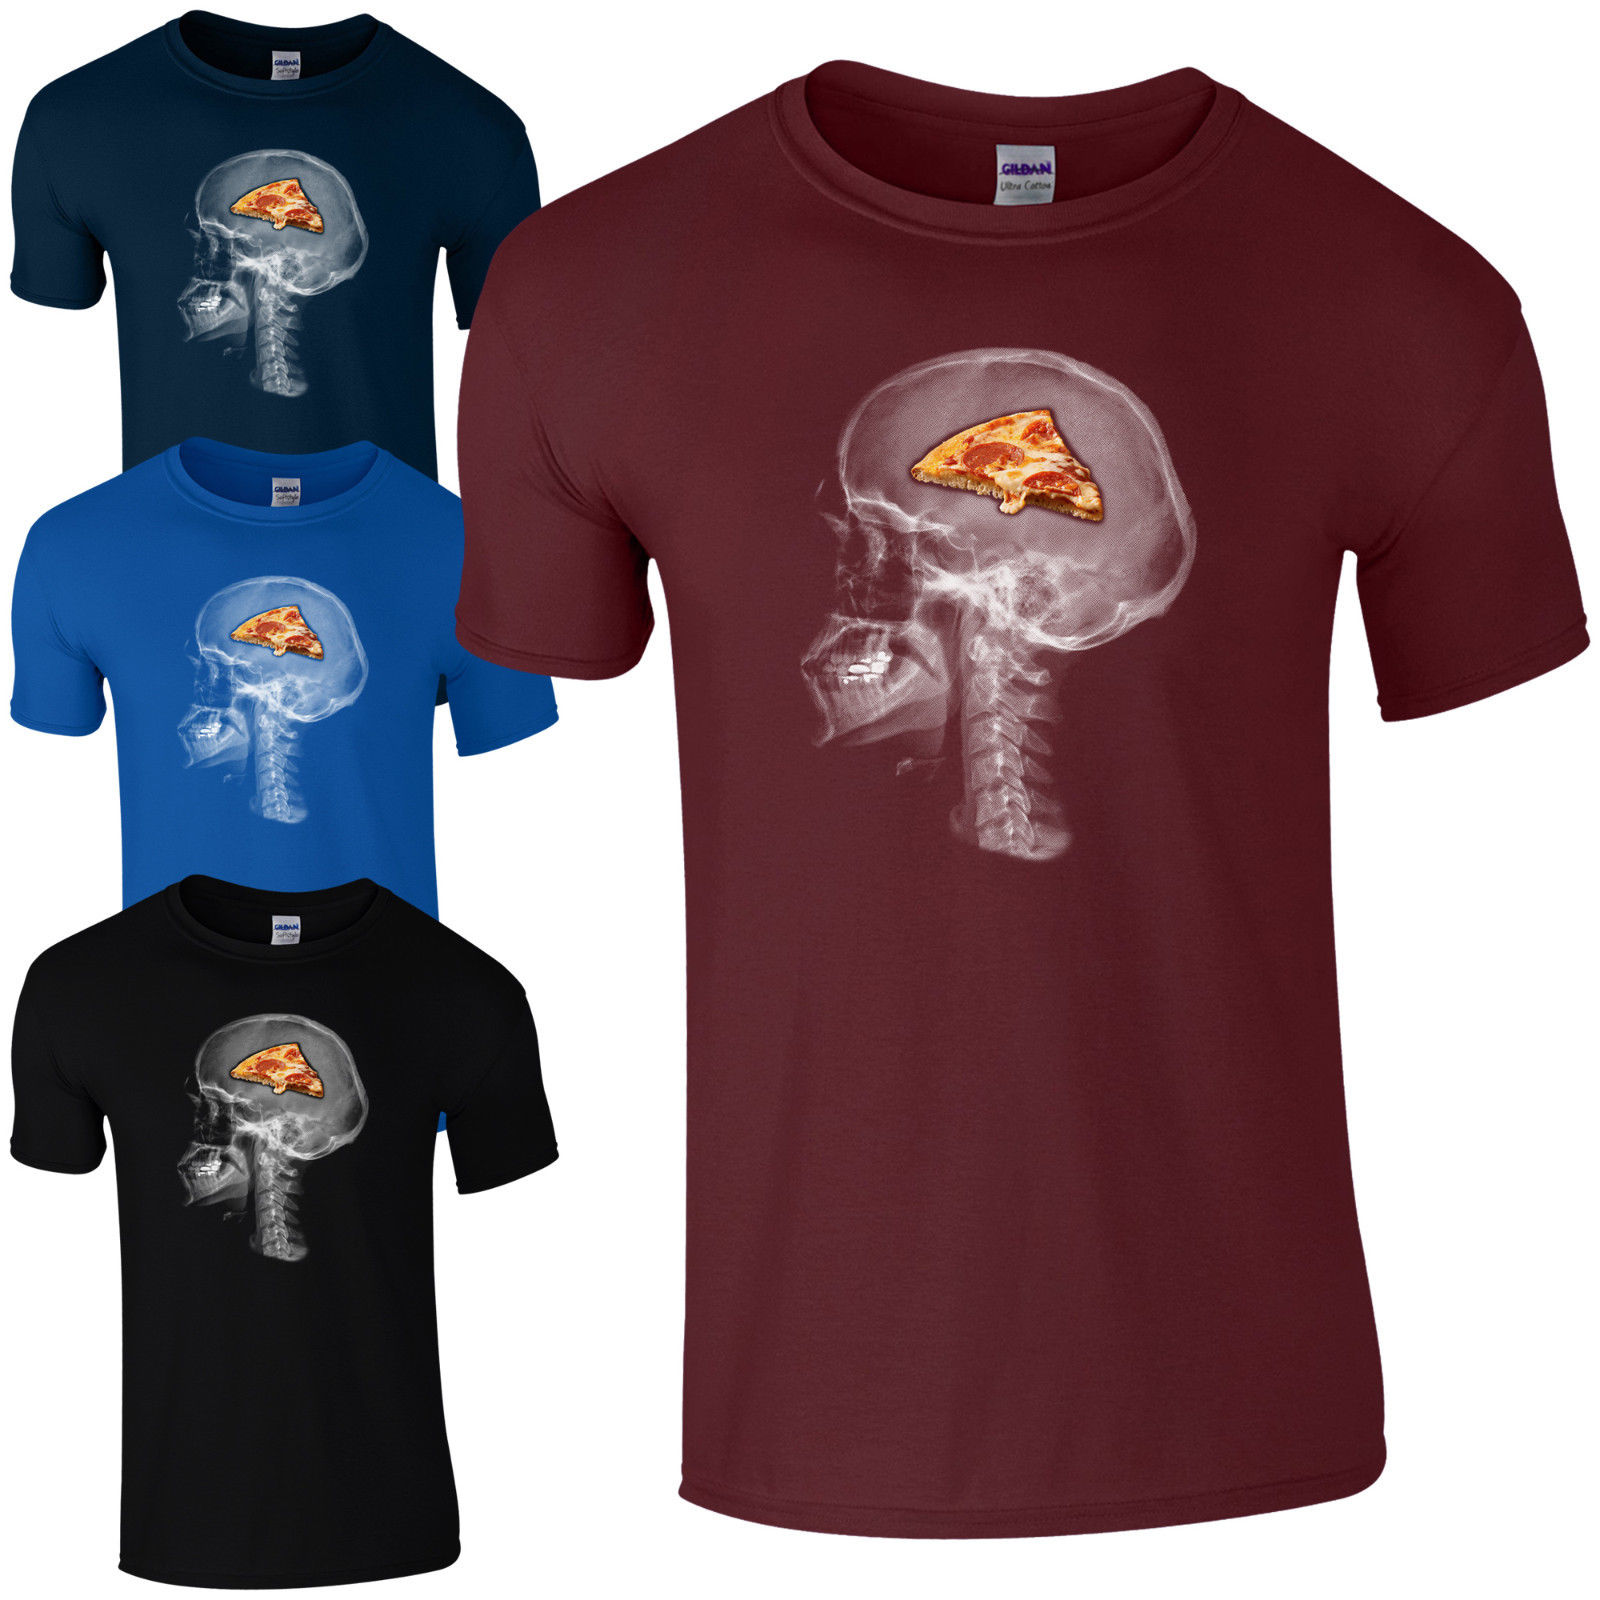 Pizza On The Brain T-Shirt - Funny Skull X-Ray Food Lovers Gift Unisex Cool Casual pride t shirt men Unisex New Fashion image